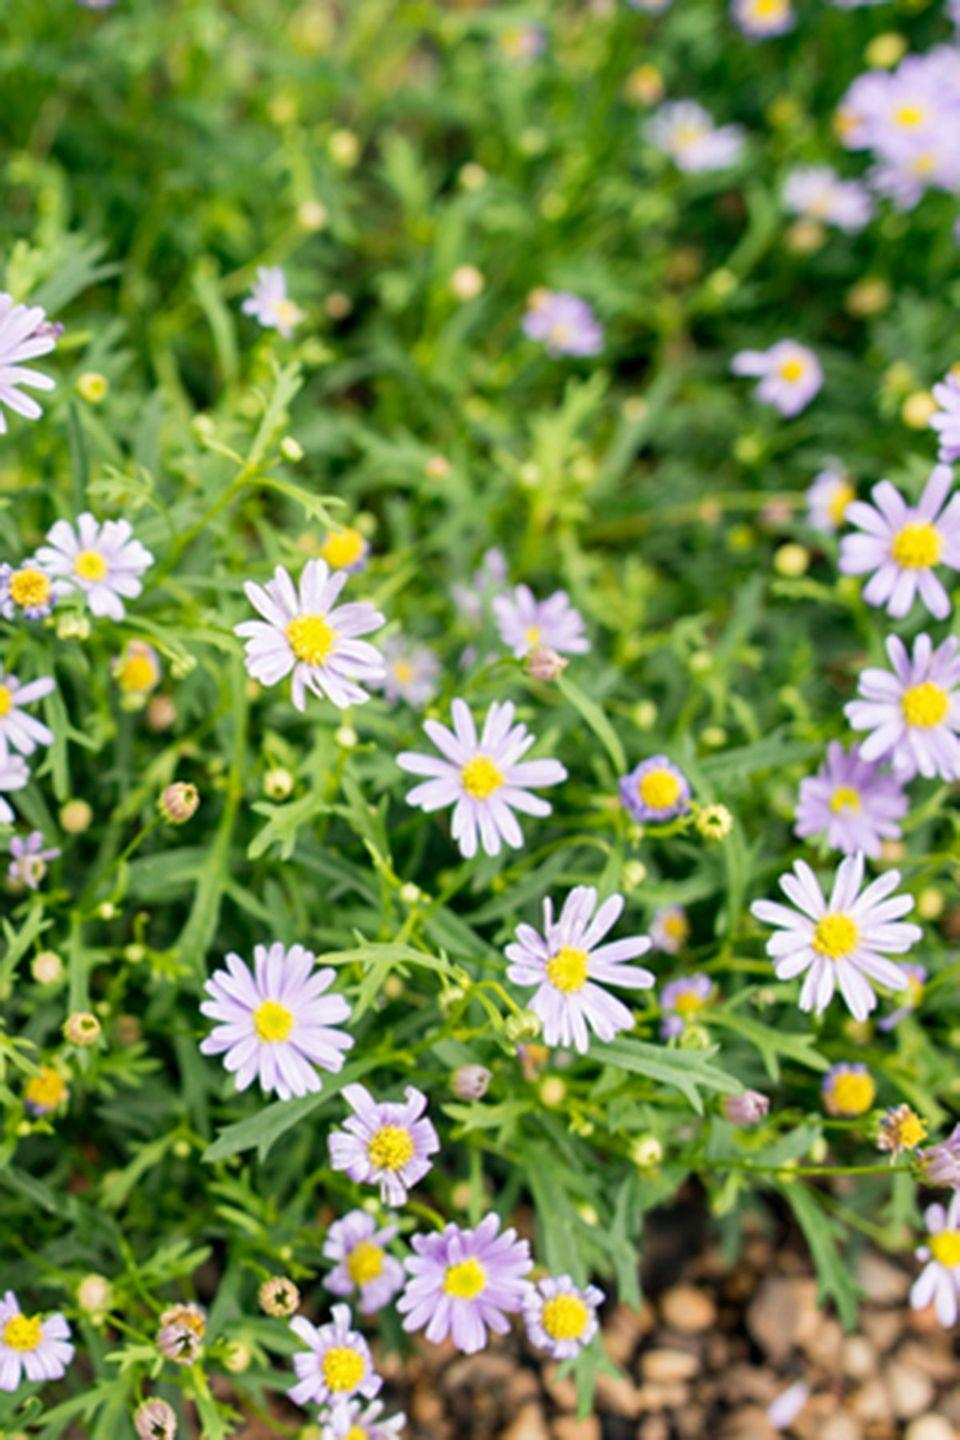 <p>These daisy-like flowers love lots of sunlight and water. They'll be blooming until almost winter.</p><p><strong>Zones: 3-8</strong></p>